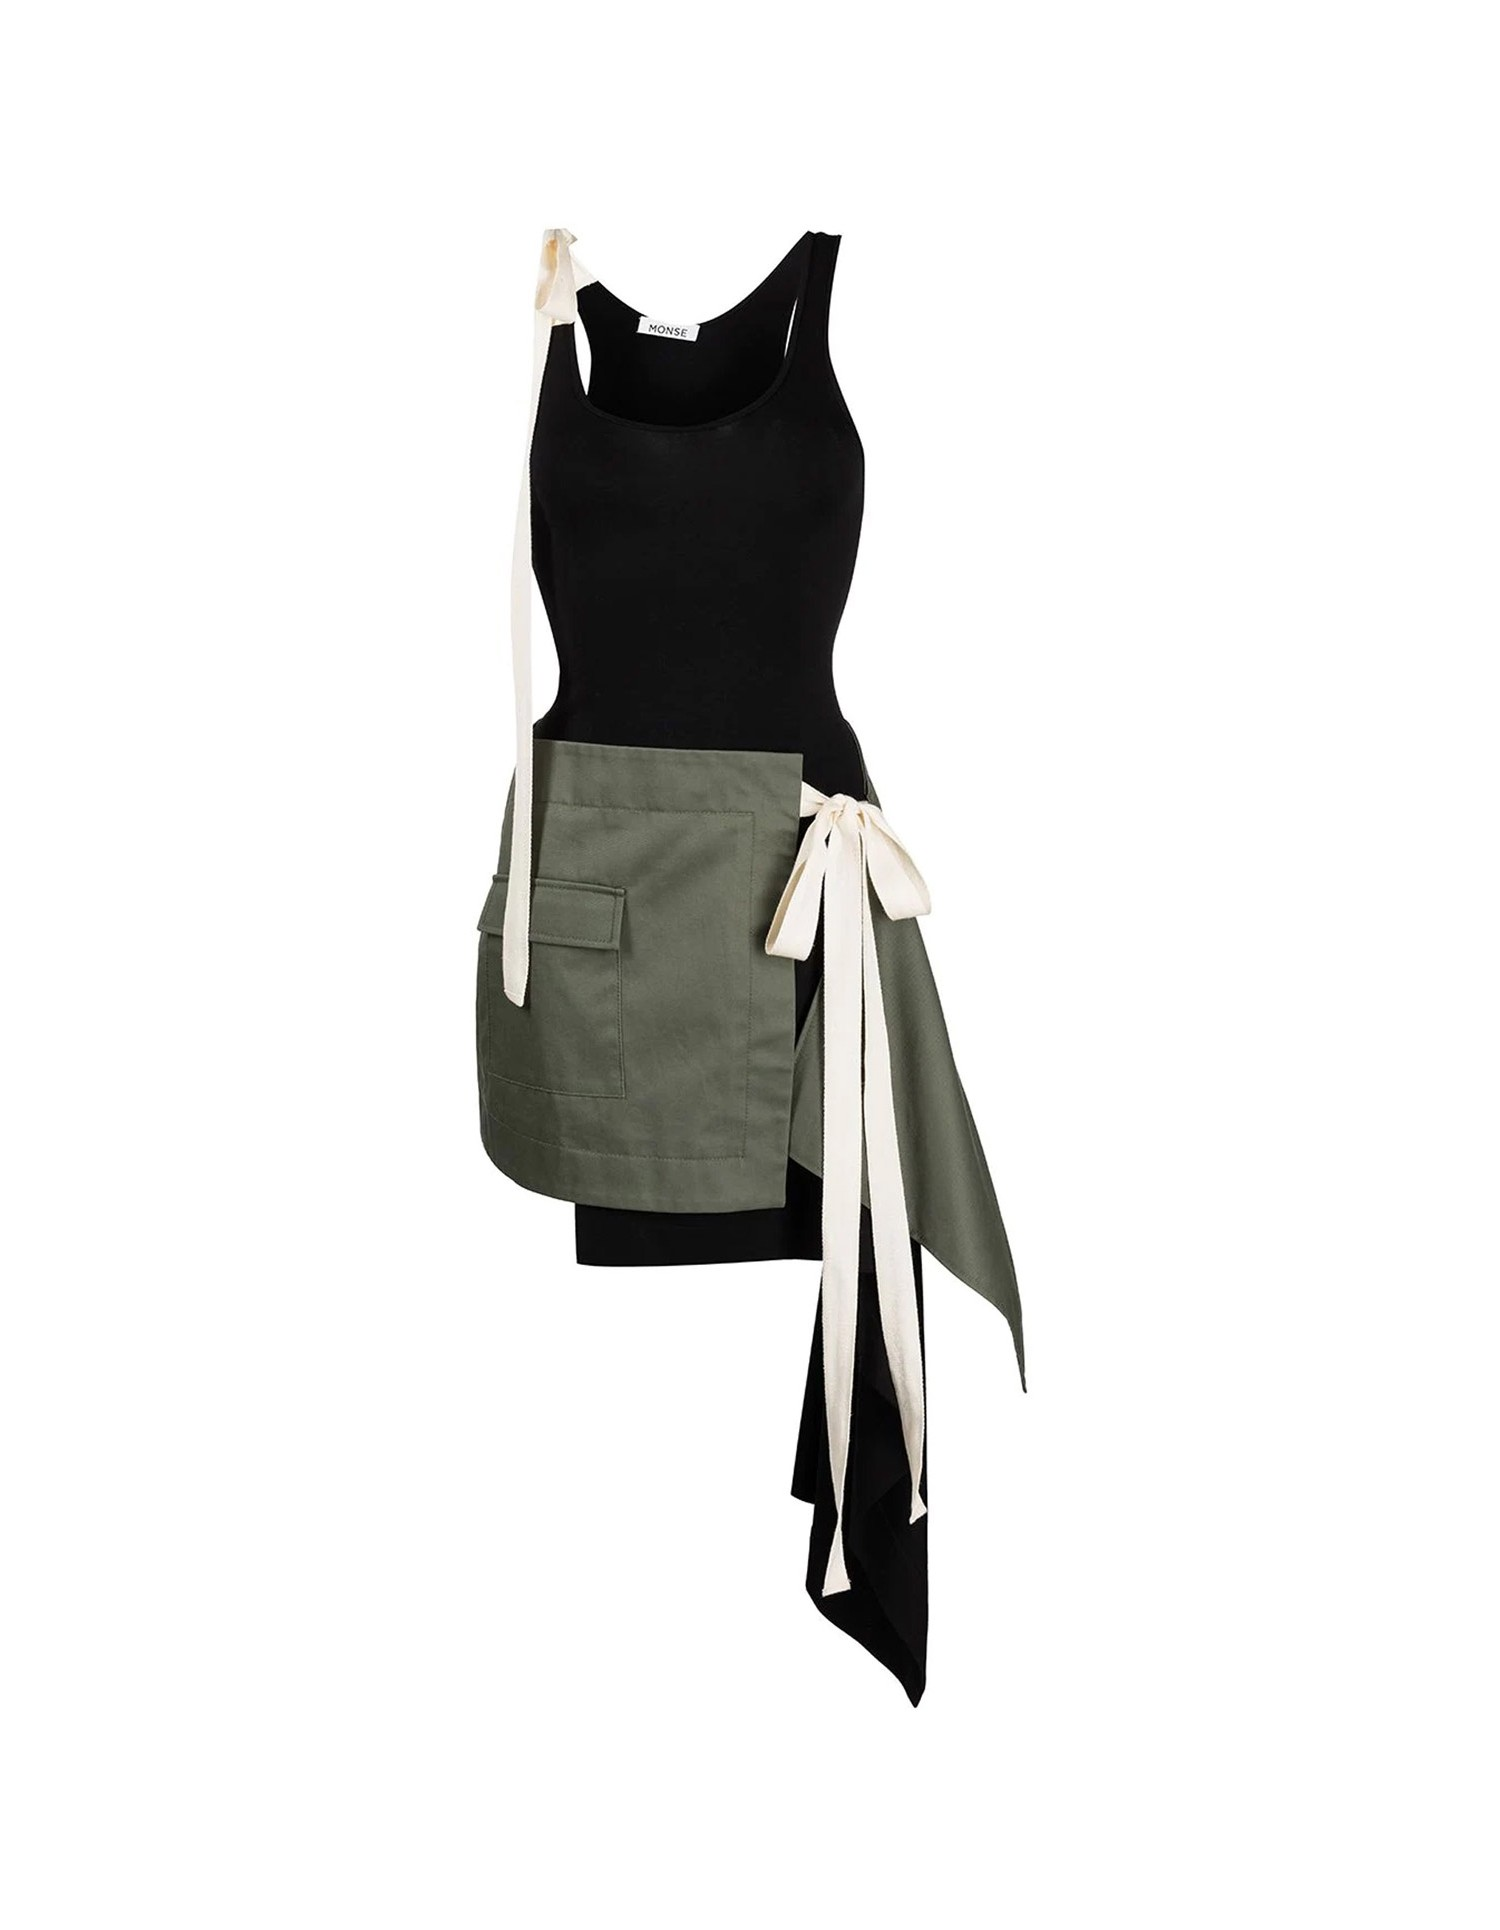 MONSE T-Skirt Dress in Black and Olive Flat Front